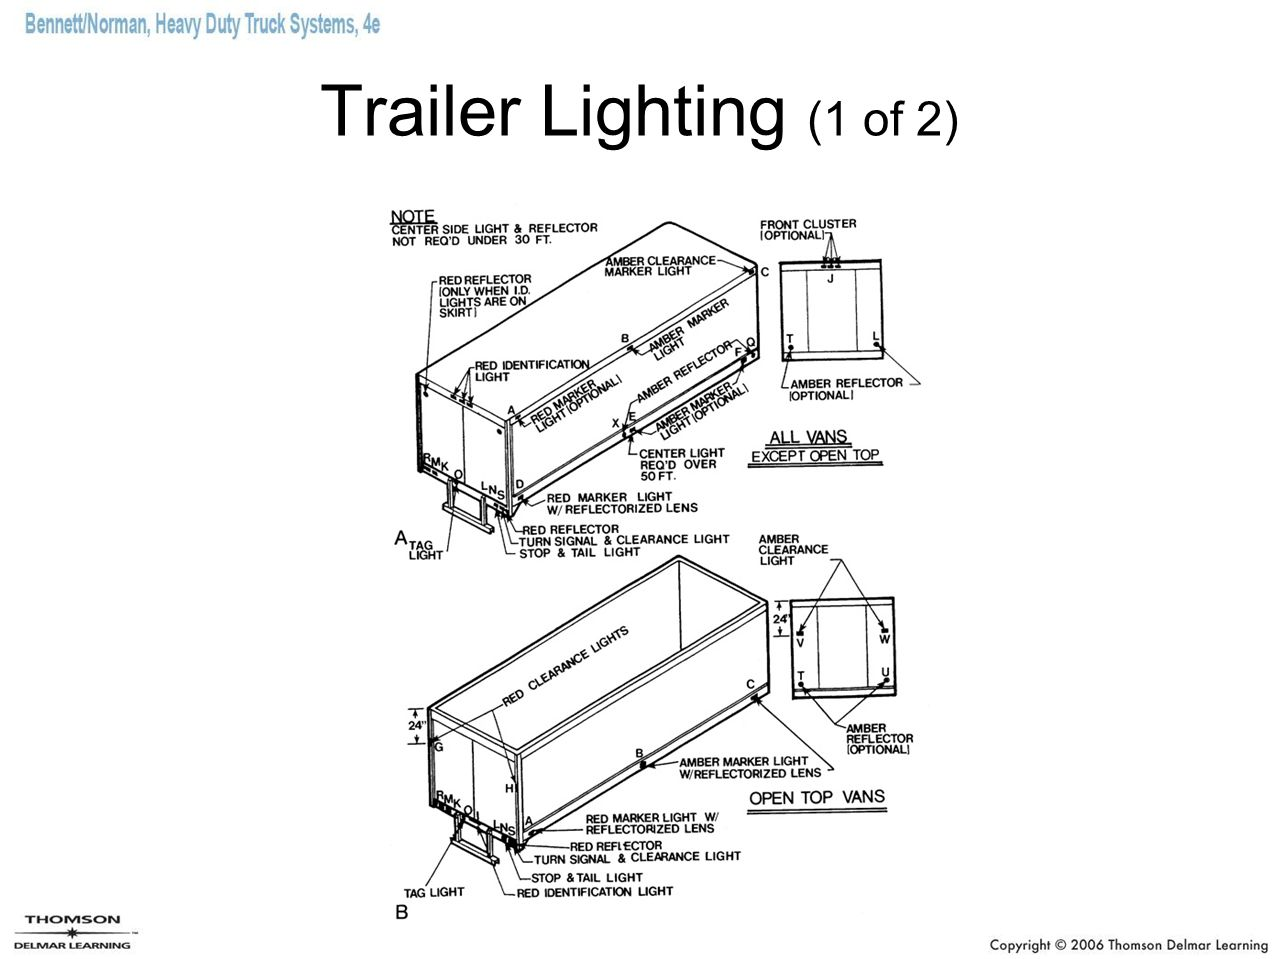 Trailer Lighting (1 of 2)